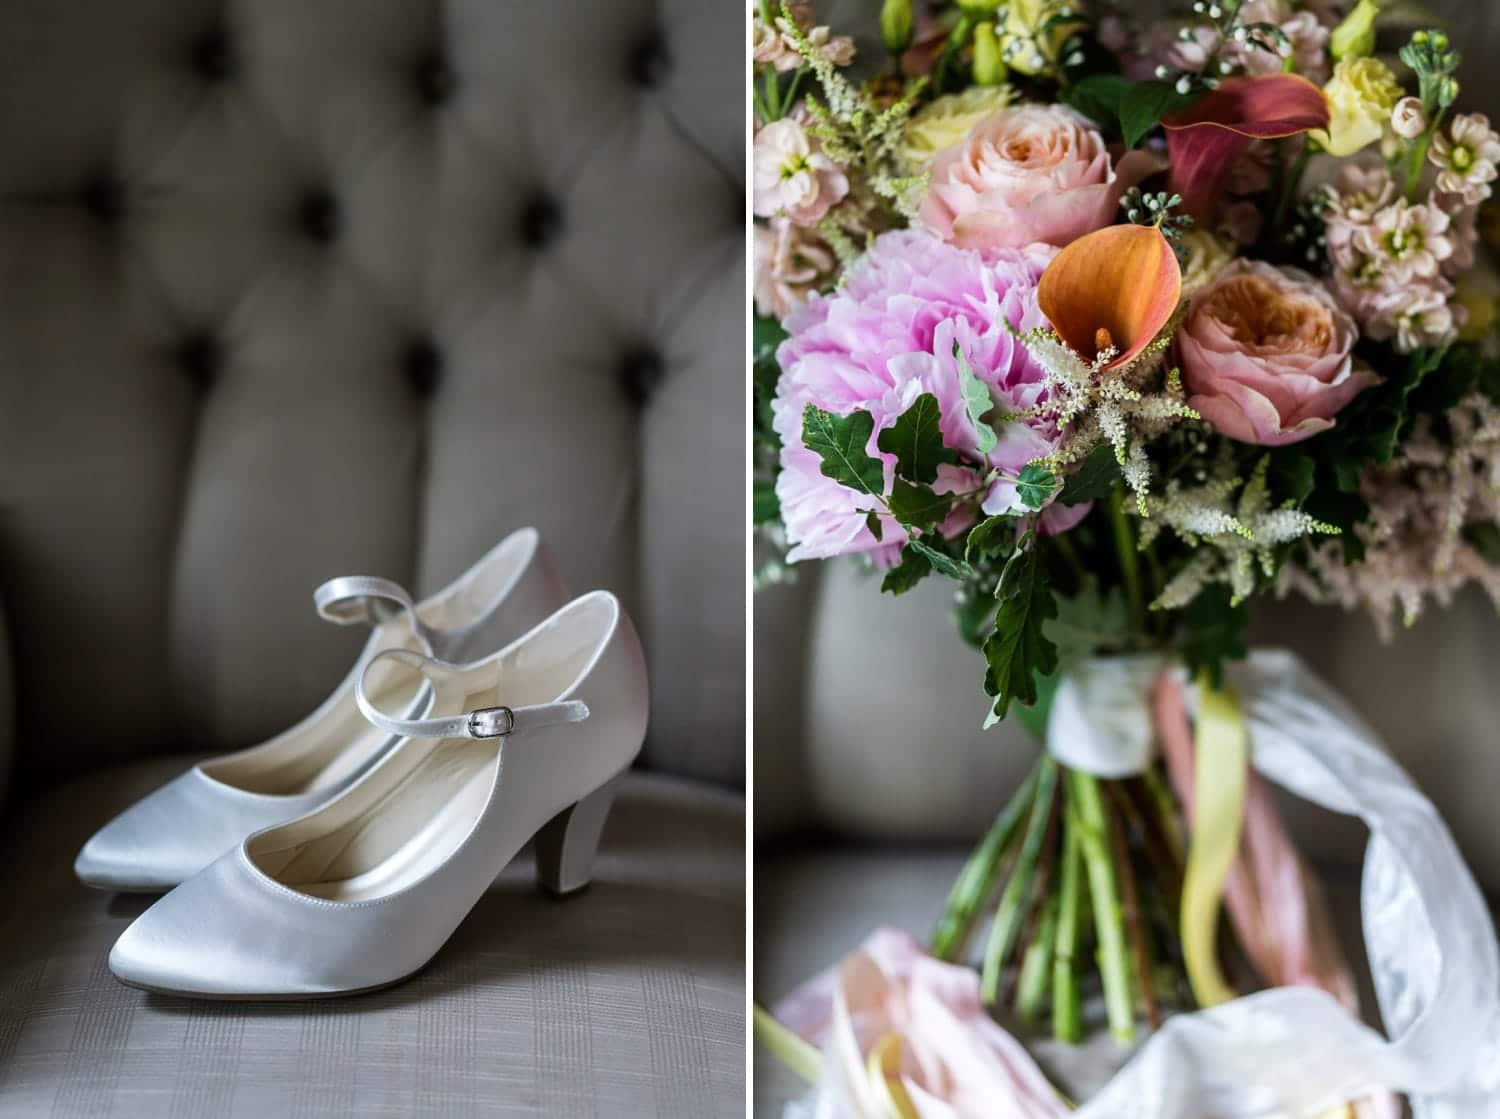 Bridal shoes & bouquet for summer wedding at miskin manor. south wales